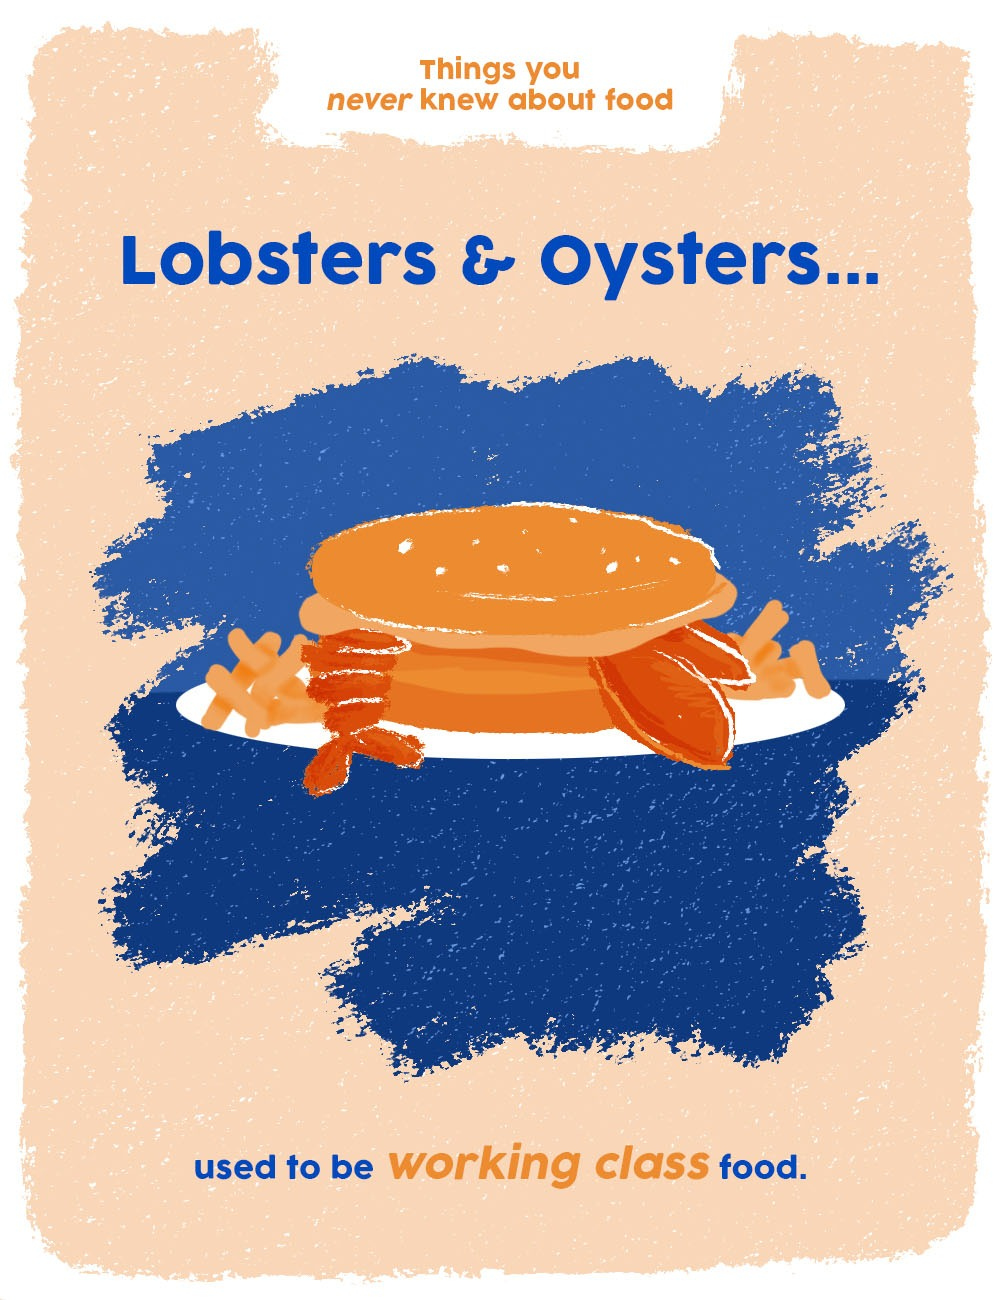 things you never knew about food graphics - lobsters were working class